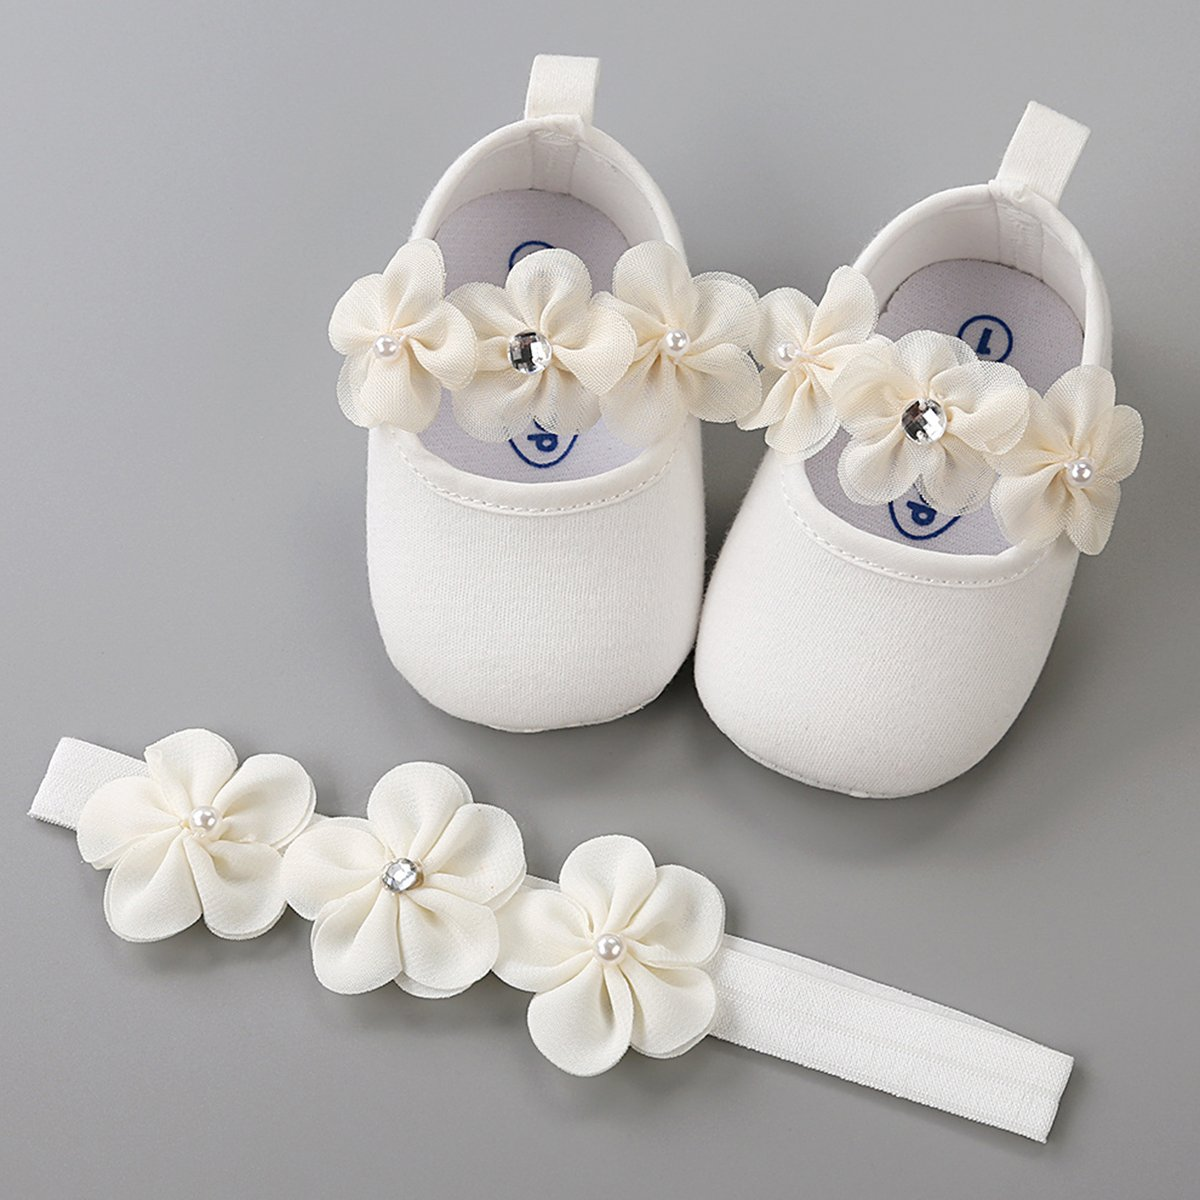 LIVEBOX Baby Infant Girls Shoes, Soft Sole Prewalker Mary Jane Princess Dress Crib Shoes with Free Baby Headband for Attend Wedding Birthday Party Events (White, S) by LIVEBOX (Image #2)